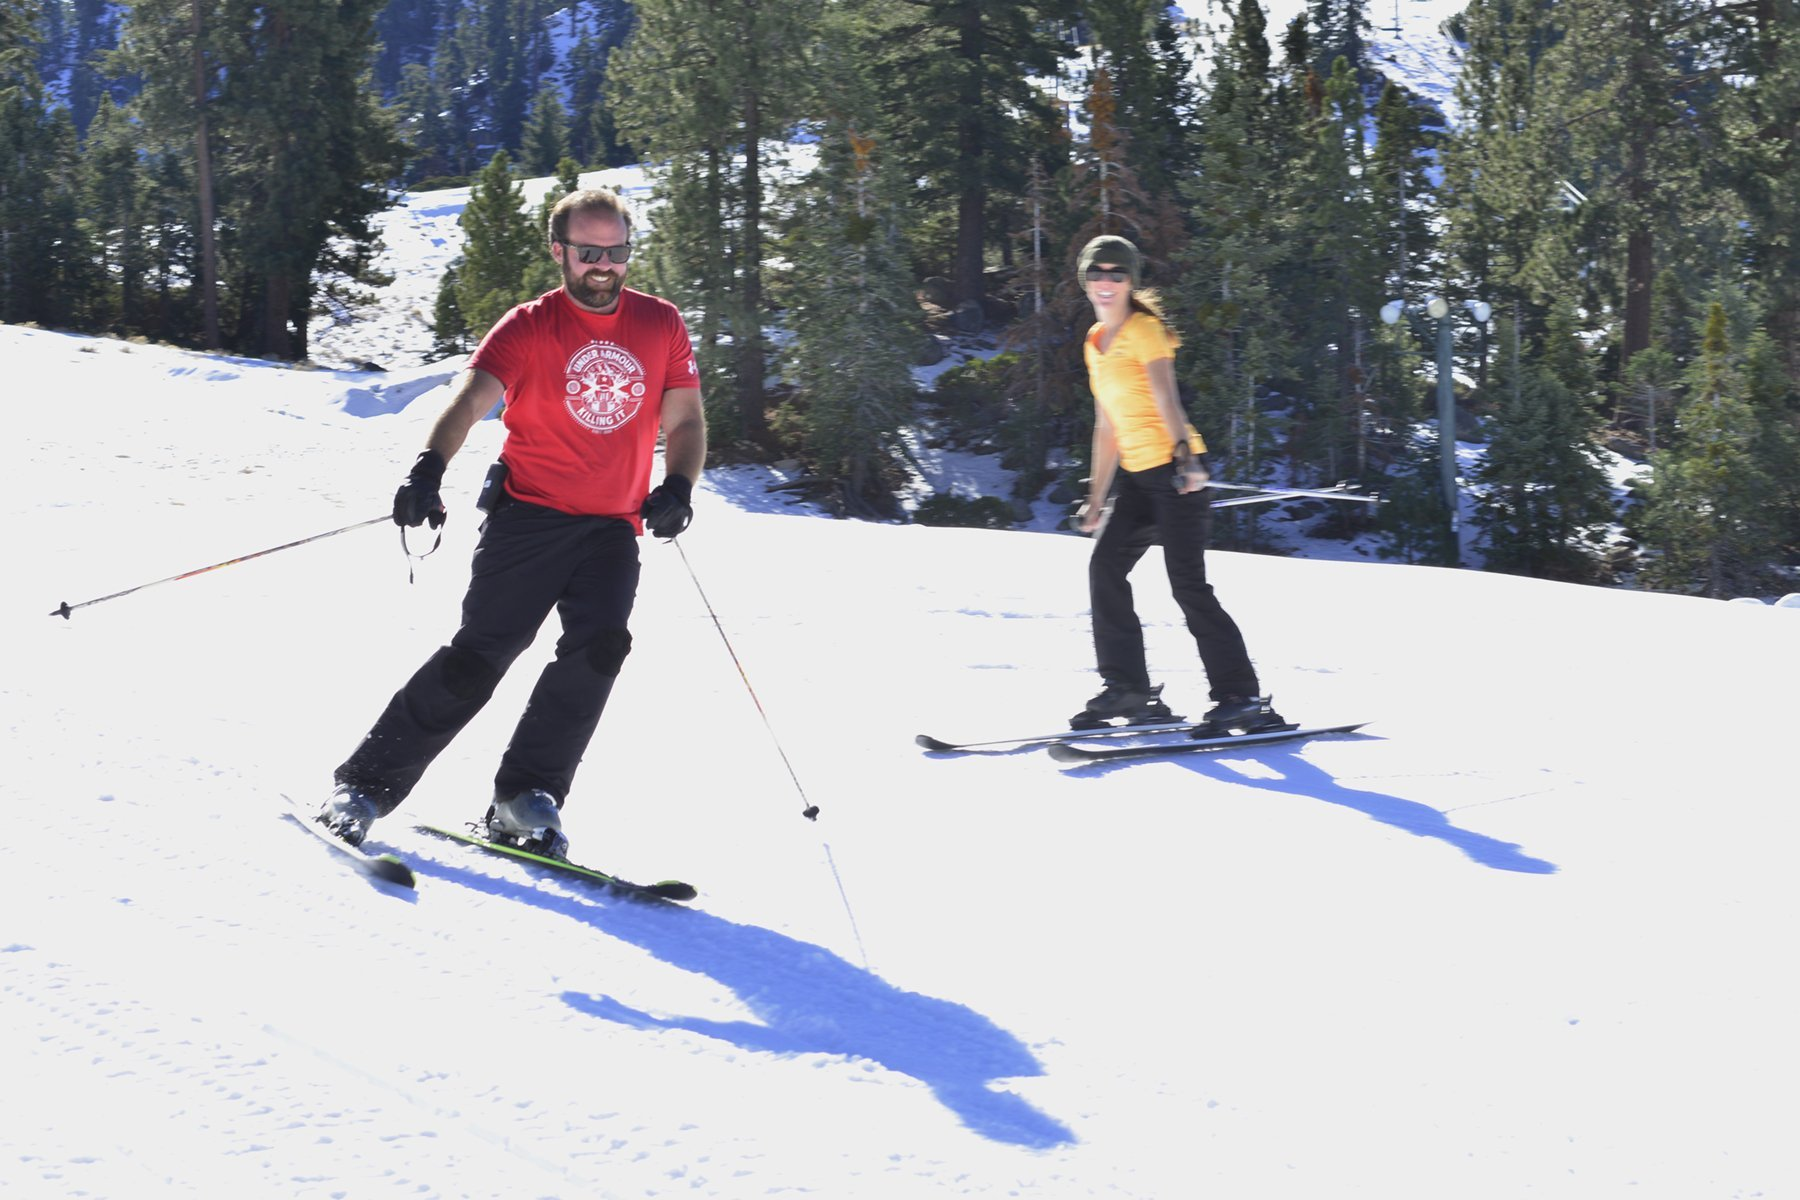 Action shot of couple skiing downhill in t-shirts on a sunny day